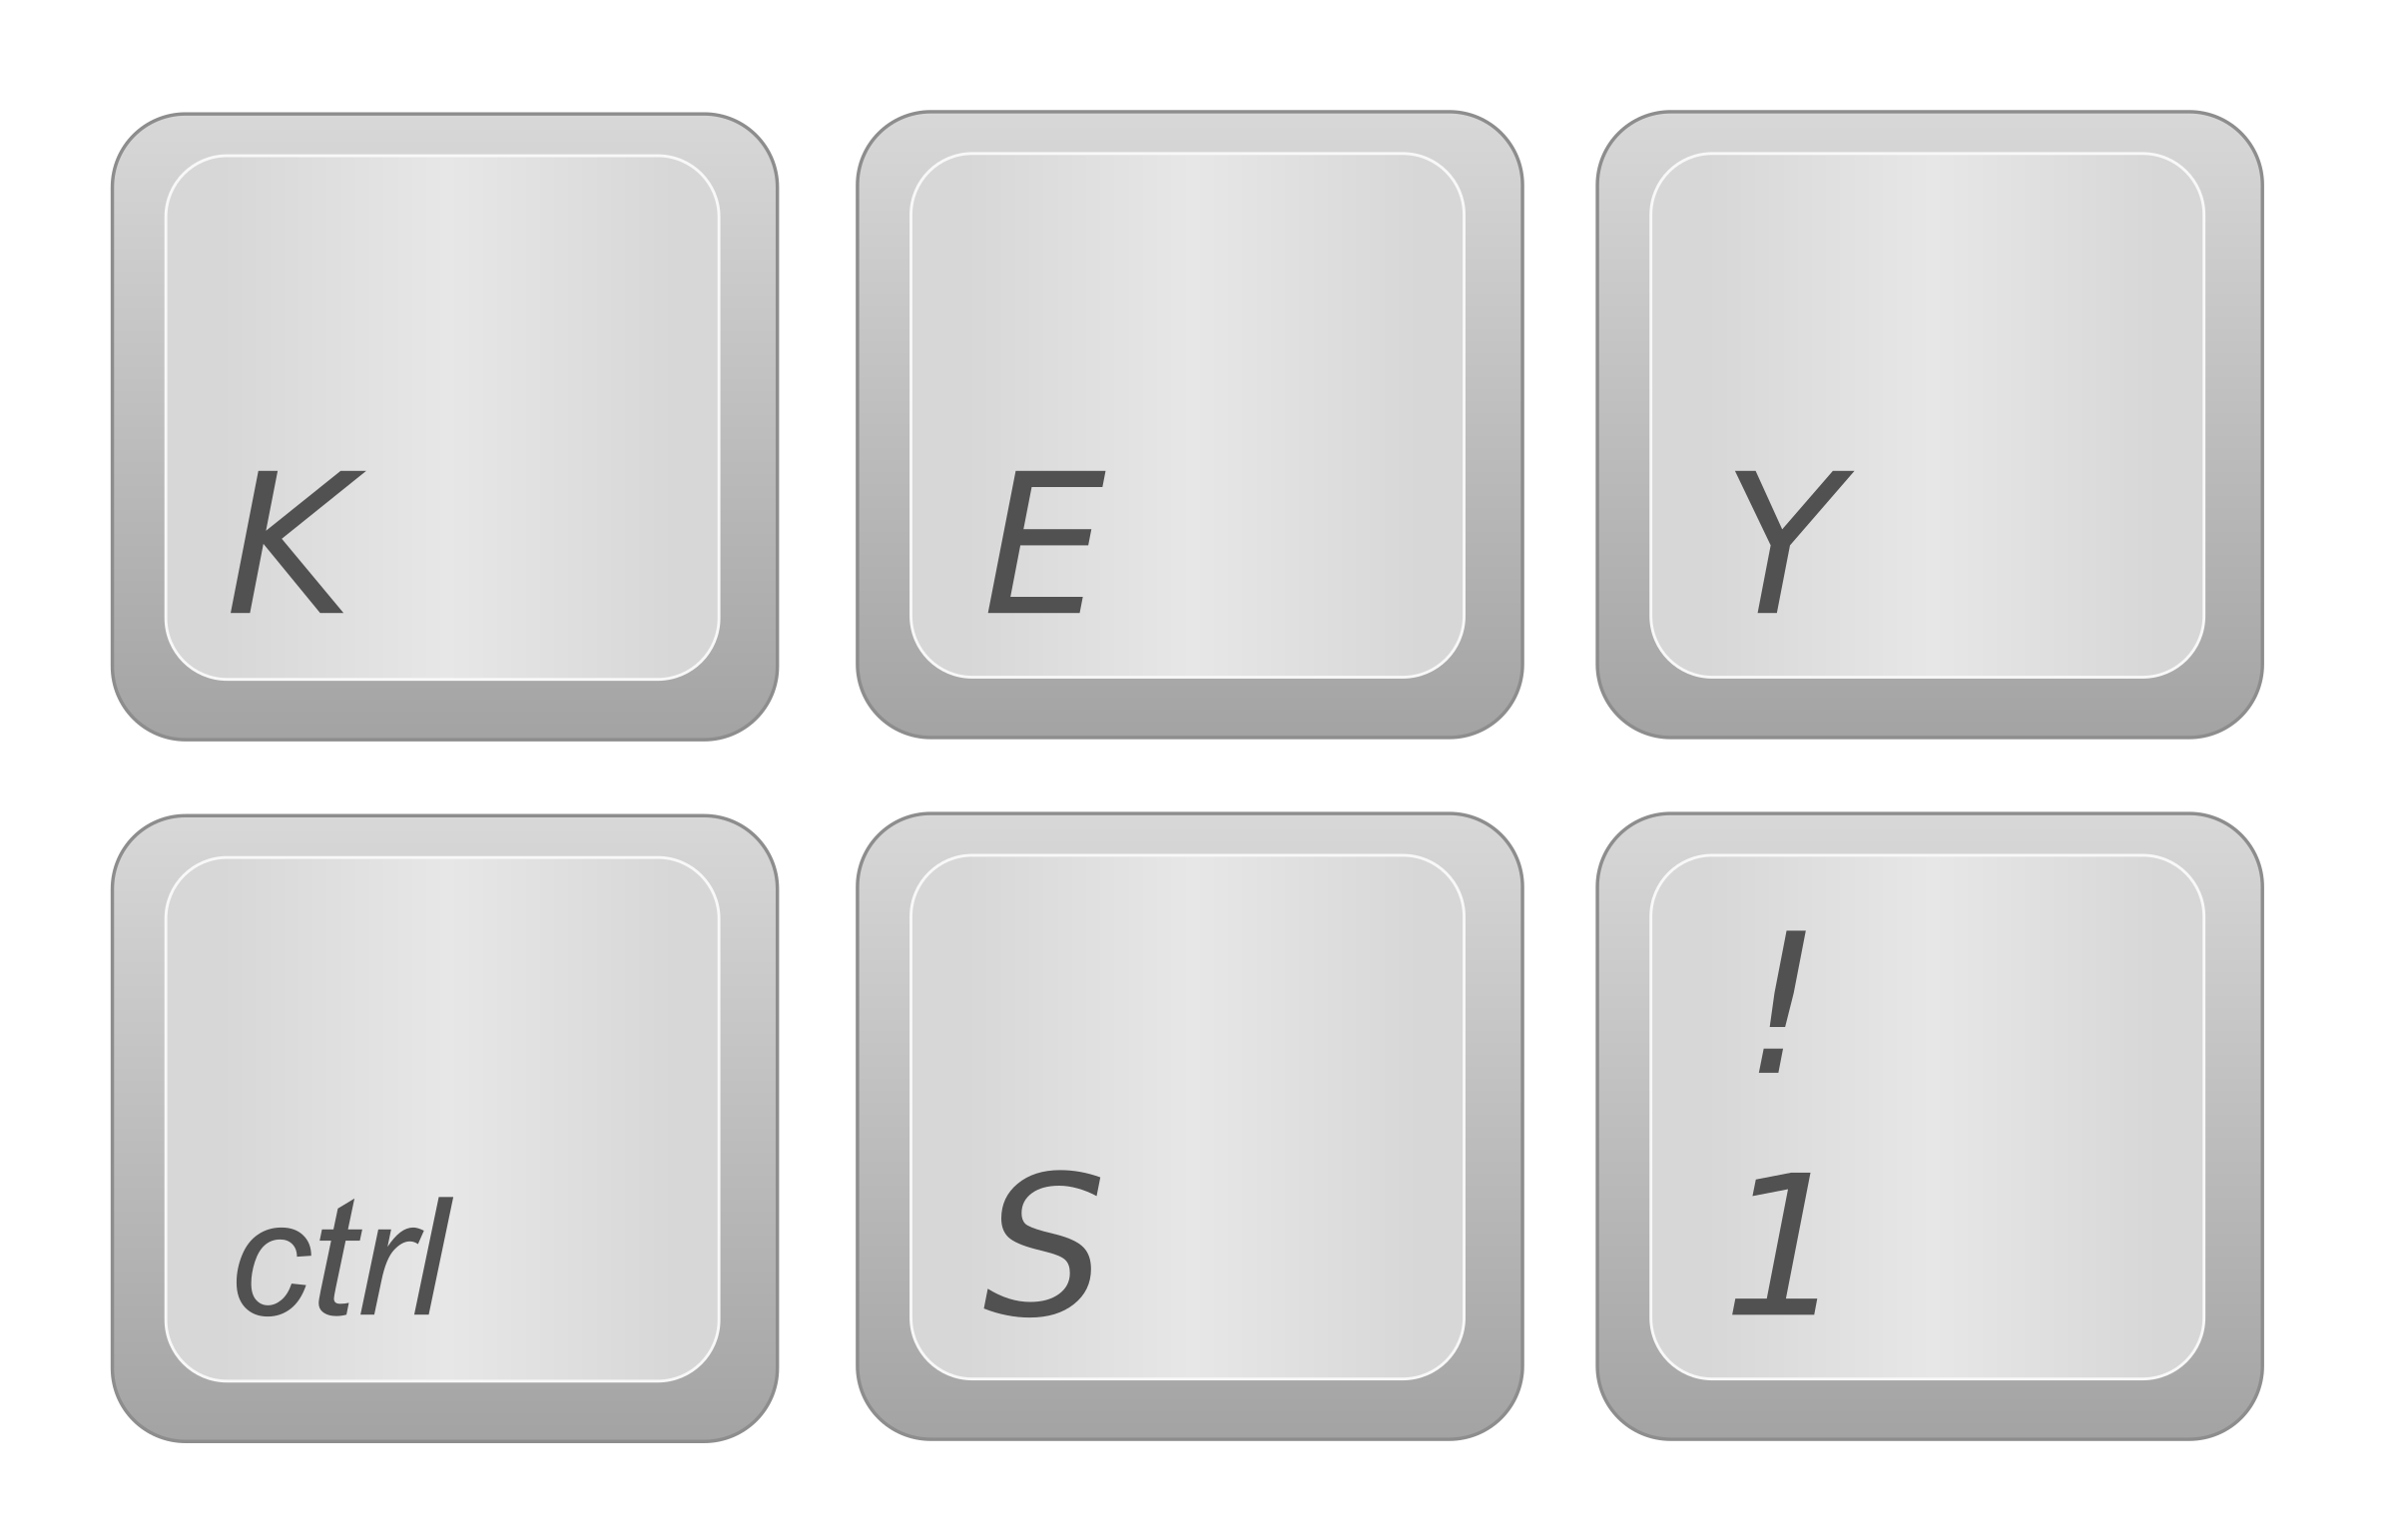 Computer keyboard keys clipart clipart black and white stock Clipart - Keyboard Keys clipart black and white stock